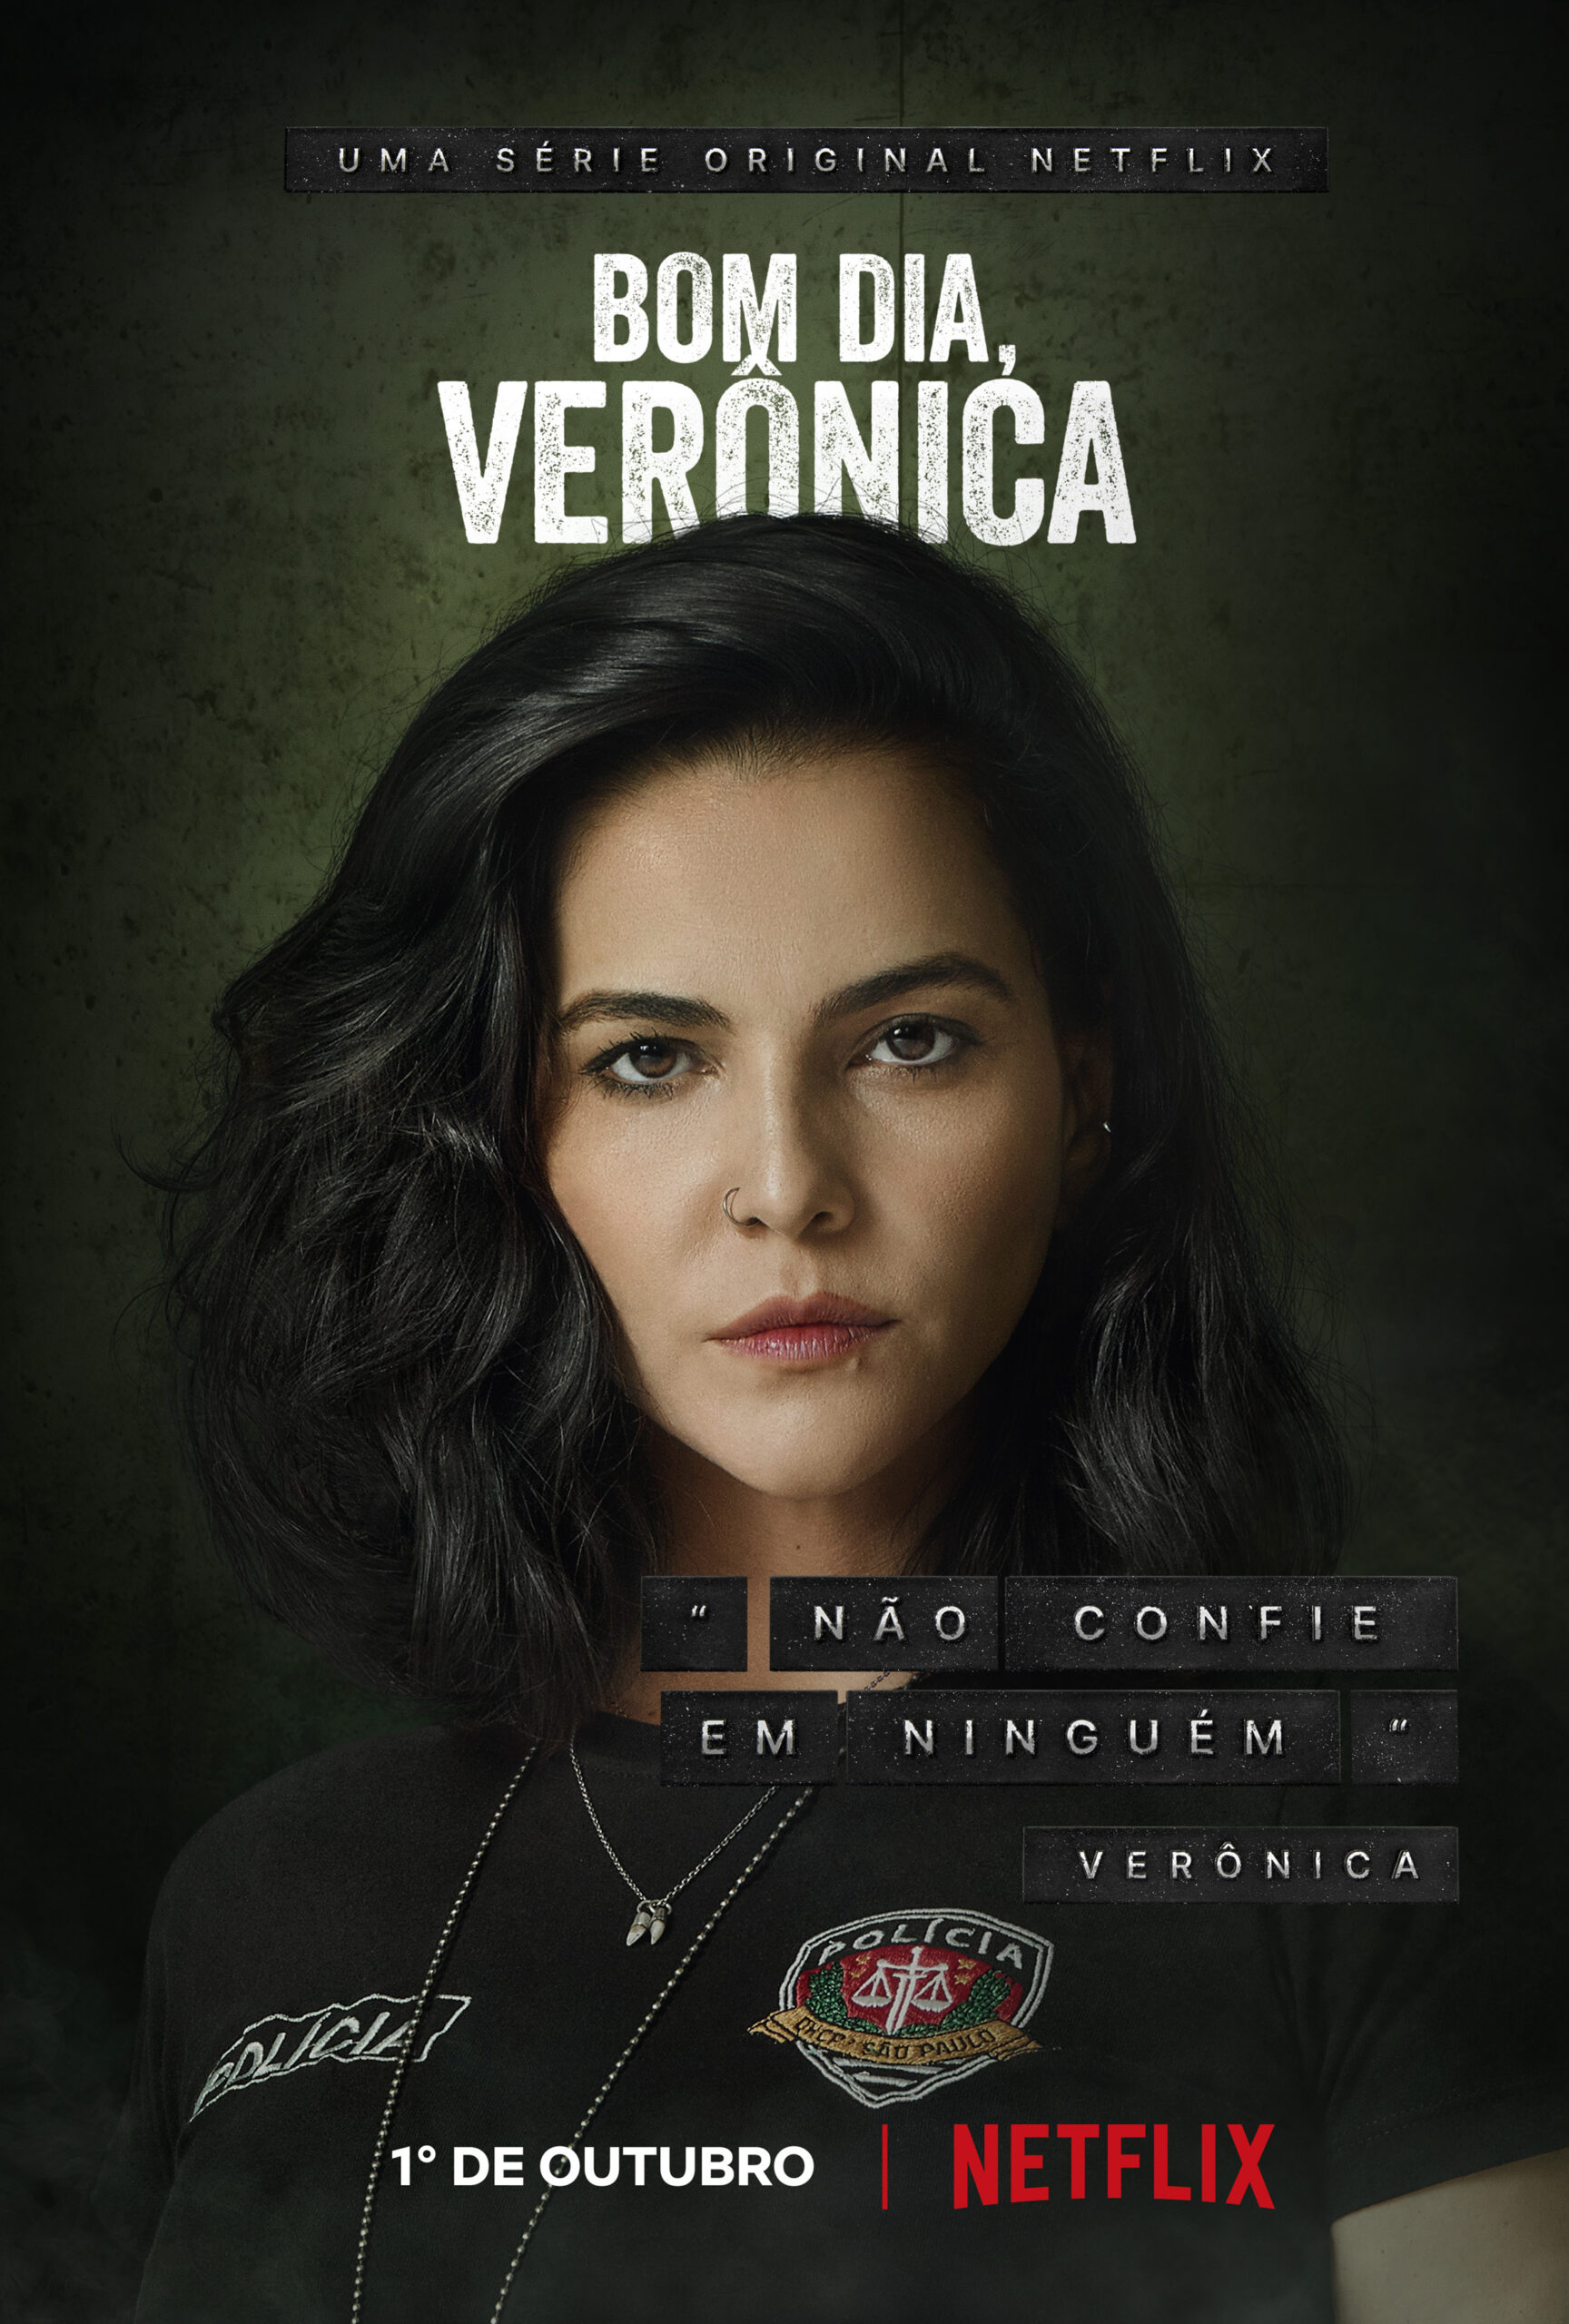 bom dia veronica posters 3 scaled